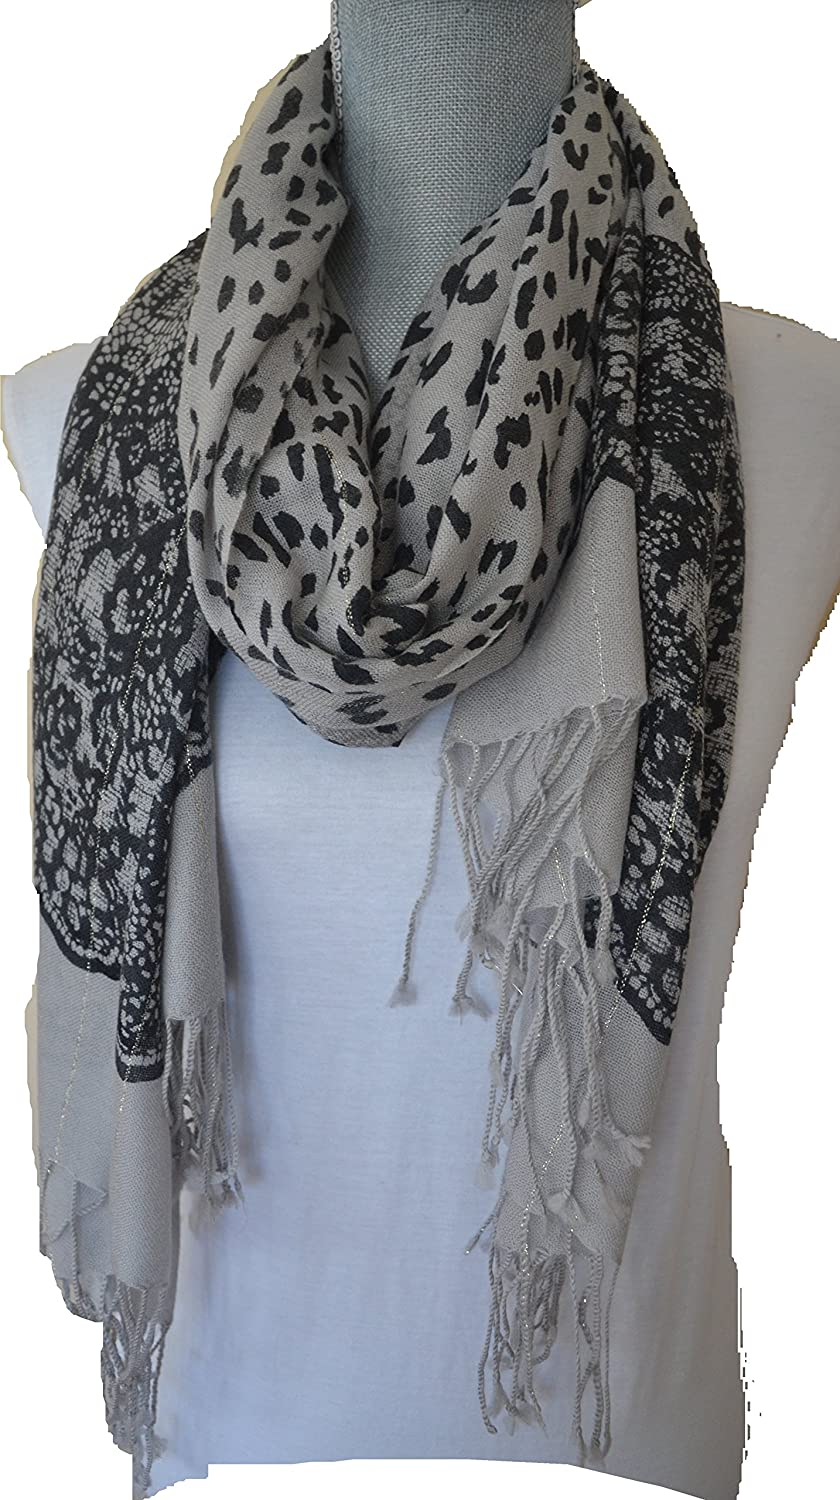 Fashionable Pashmina Wool Scarf - Black Animal Prints with Thin Golden Thread